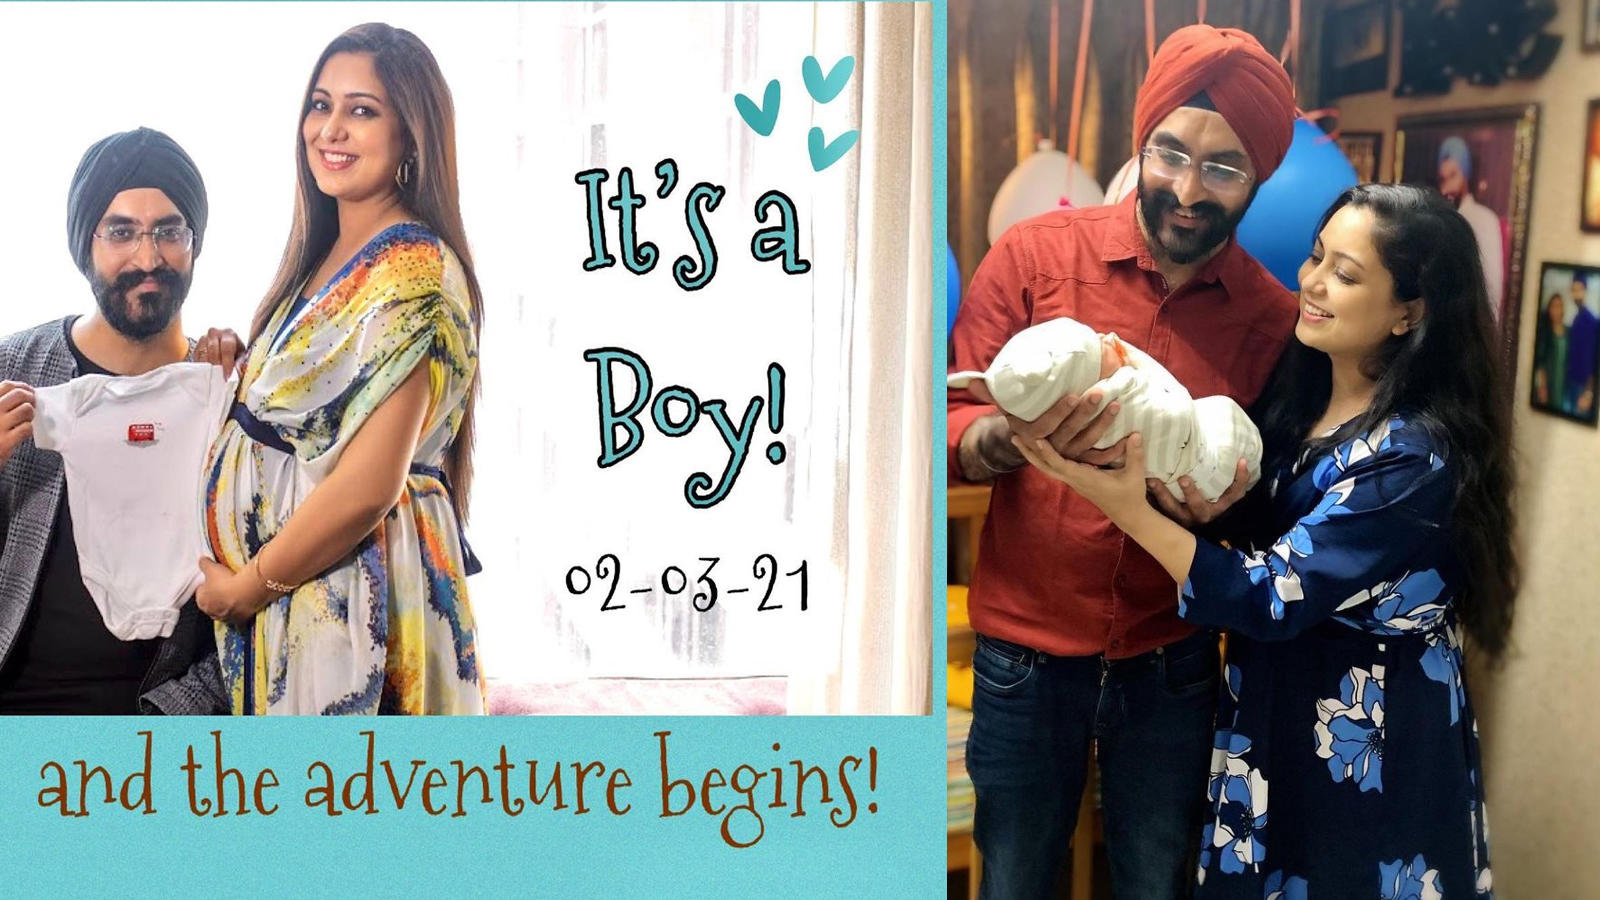 new-parents-harshdeep-kaur-and-mankeet-singh-share-the-first-glimpse-of-their-newborn-son